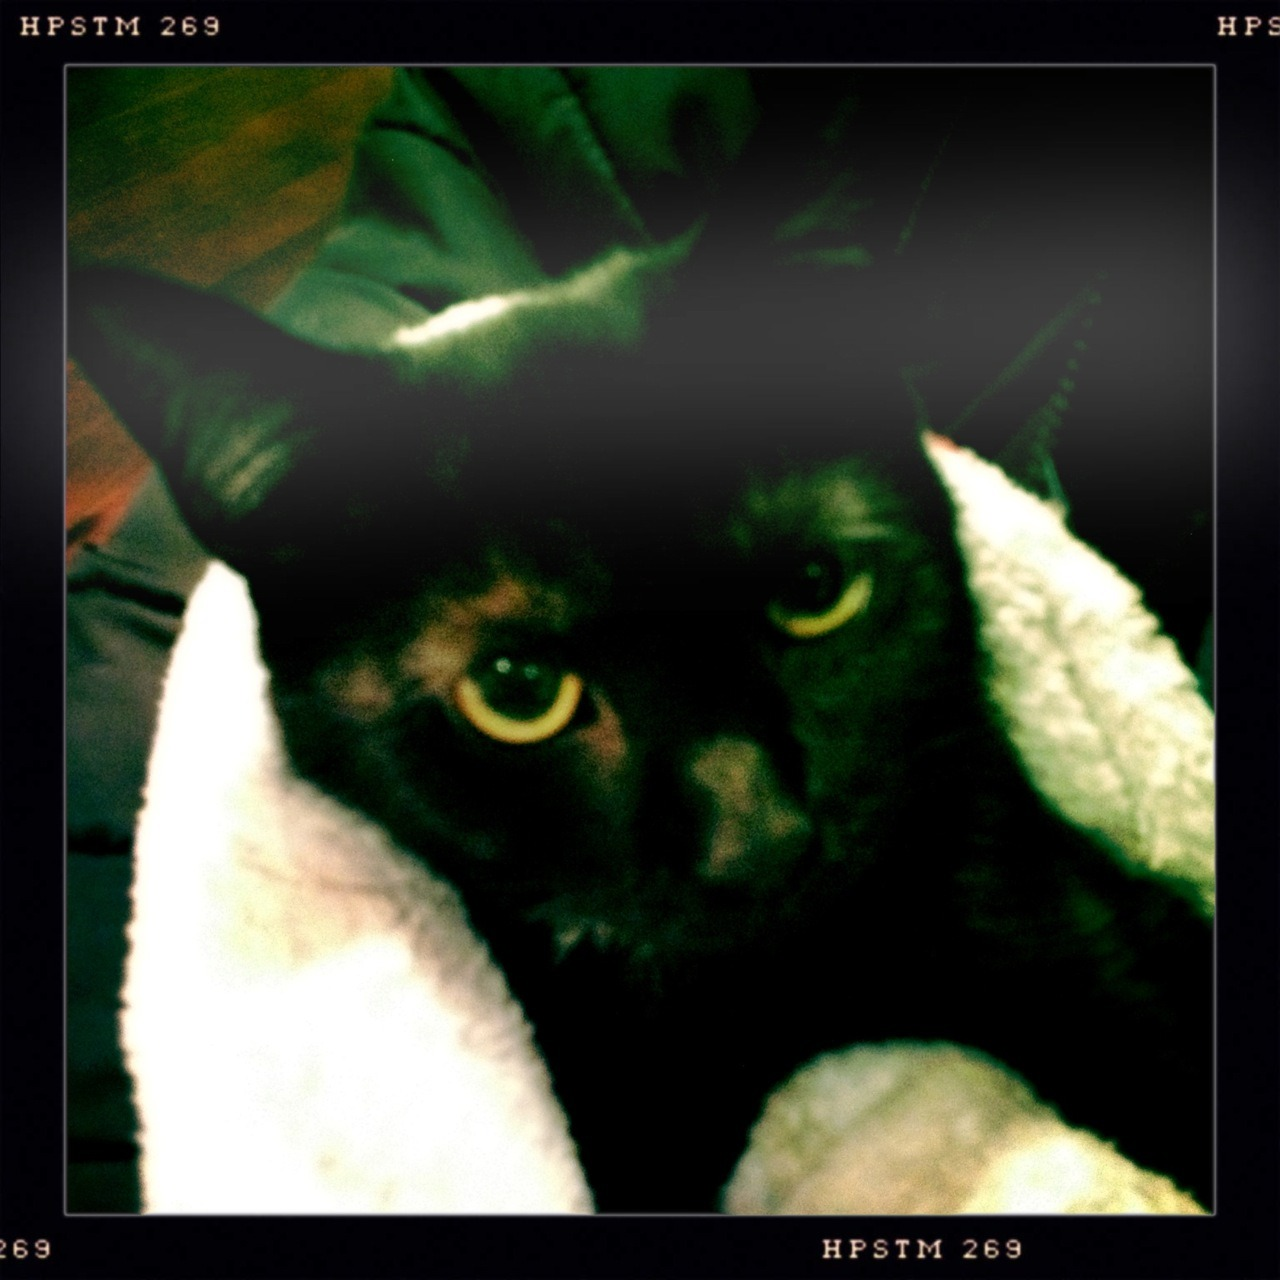 Kitten John S Lens, Pistil Film, No Flash, Taken with Hipstamatic